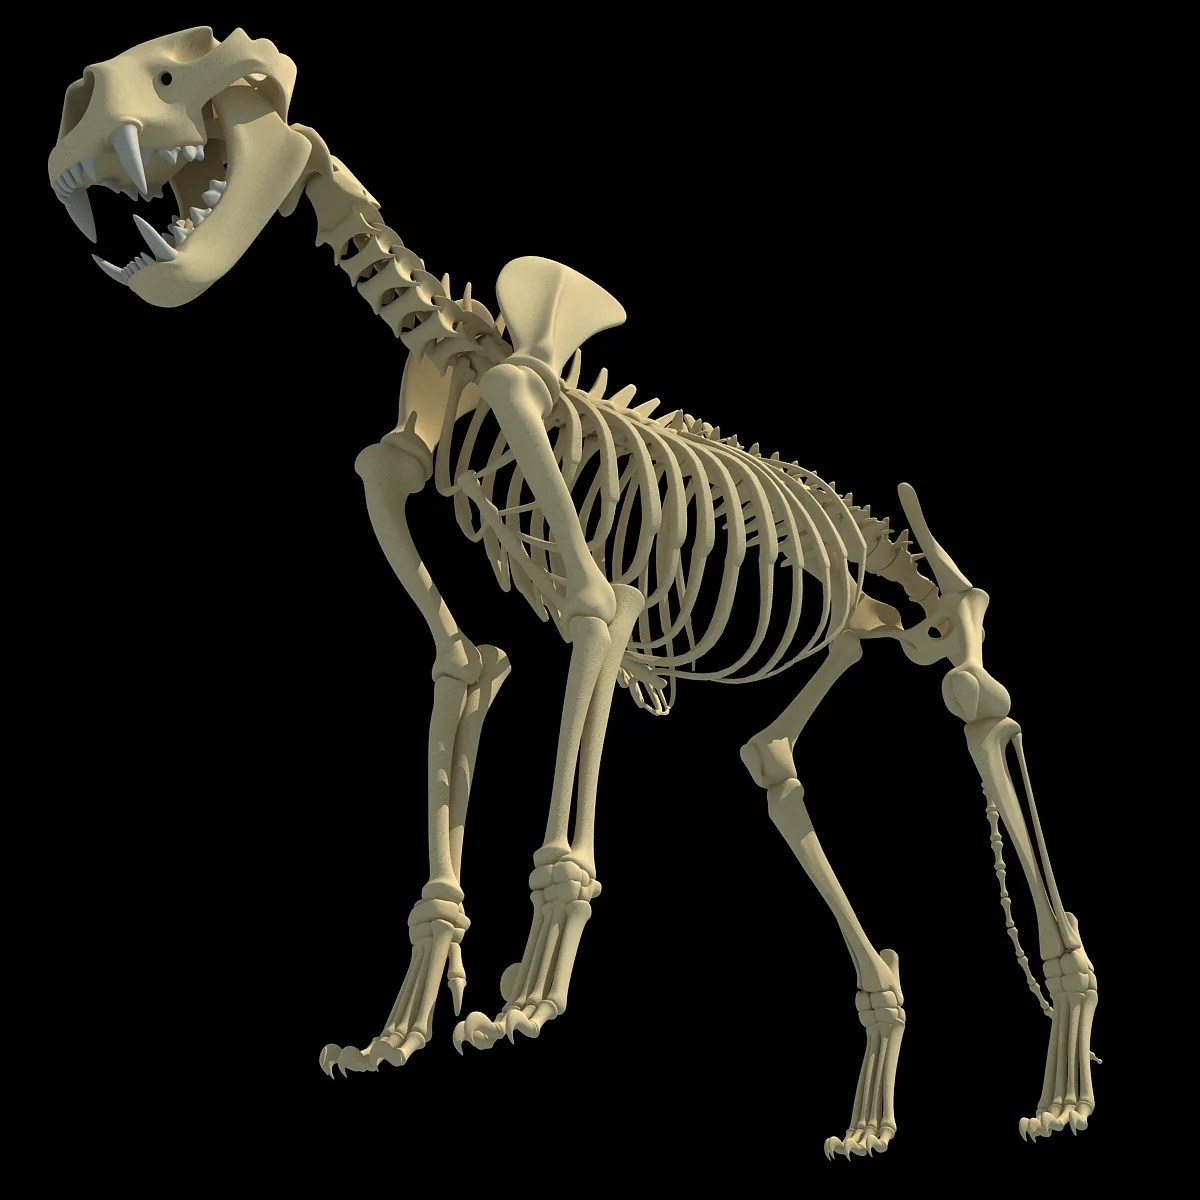 3d Models Animal Skeletons - Year of Clean Water